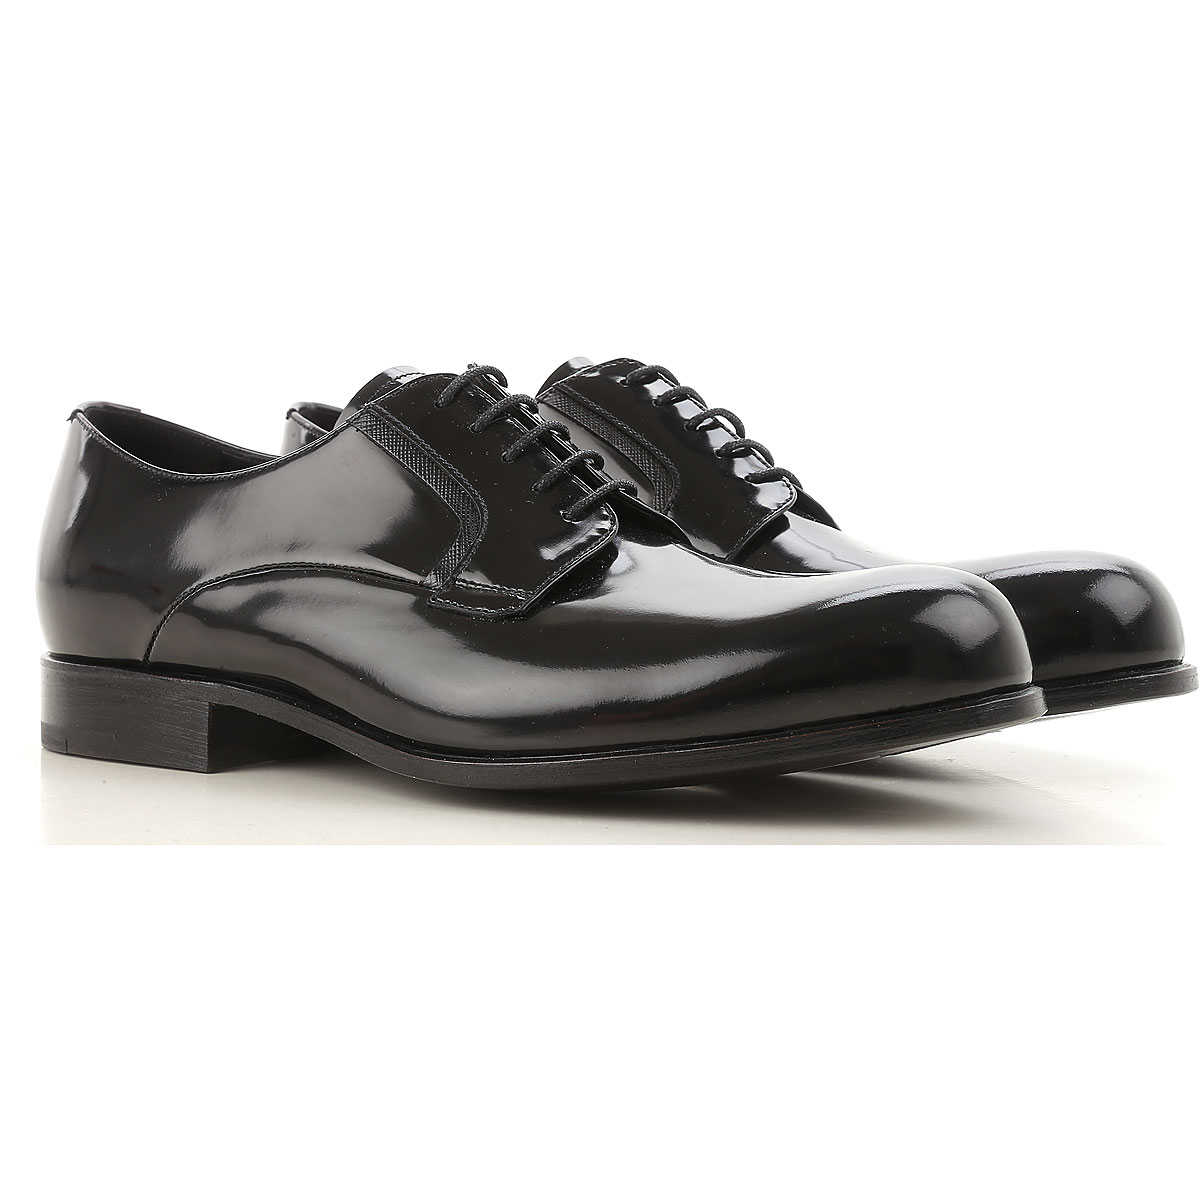 Prada Lace Up Shoes for Men Oxfords Derbies and Brogues On Sale in Outlet SE - GOOFASH